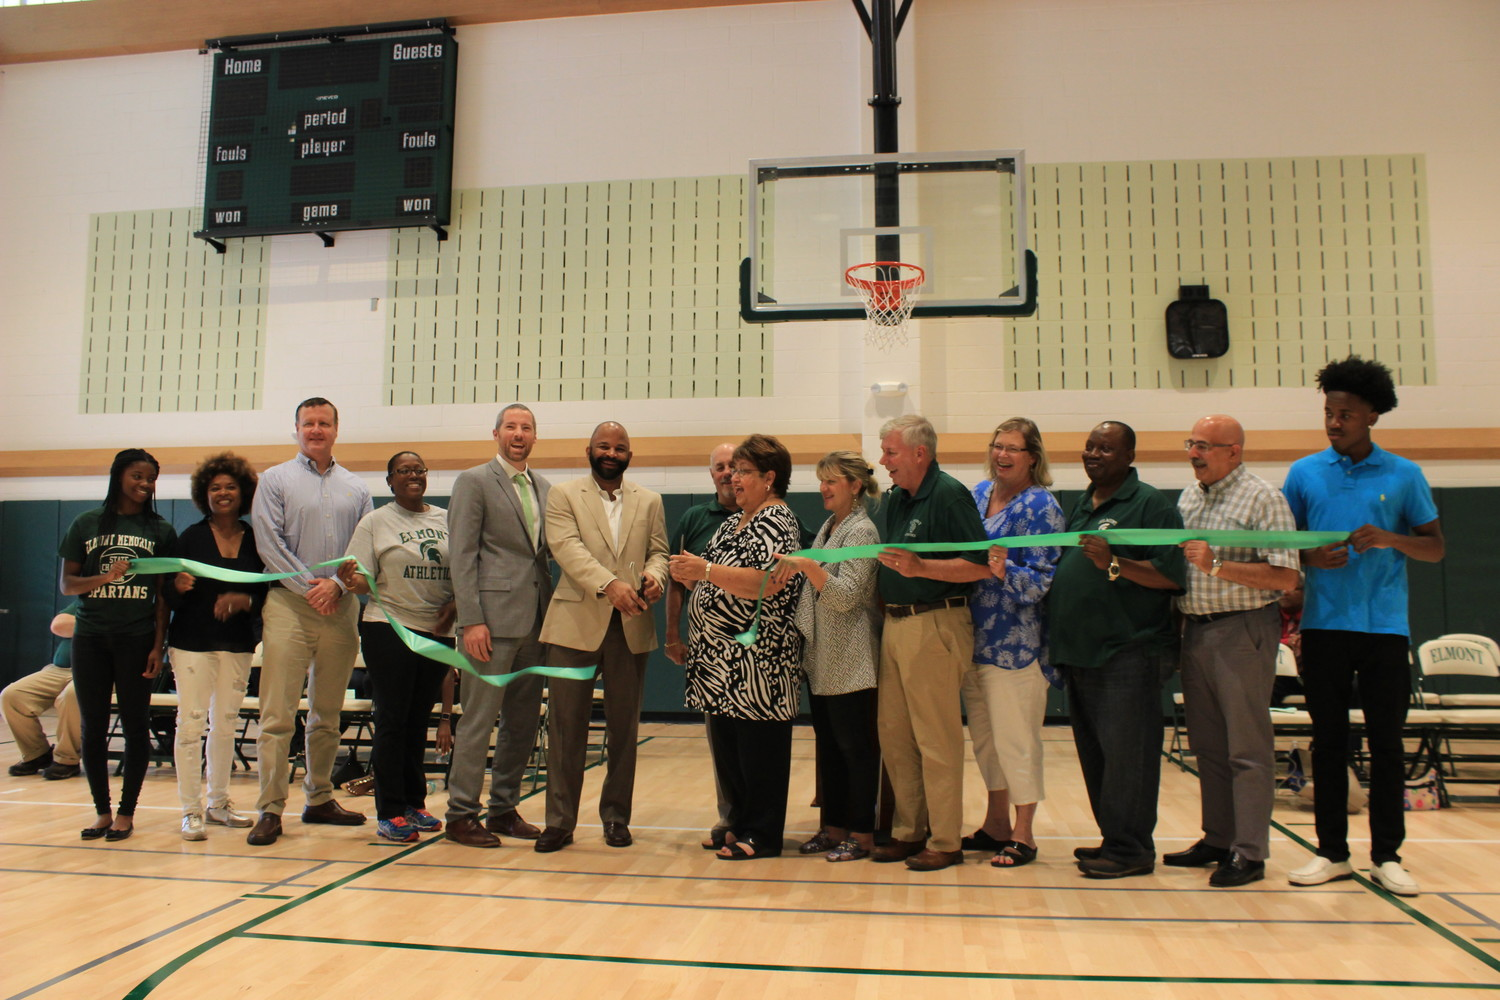 Over the past six years, Elmont Memorial High School, with the help of the school board and district voters, has updated and added onto its building. A ribbon cutting on Sept. 9 was held to commemorate the improvements.